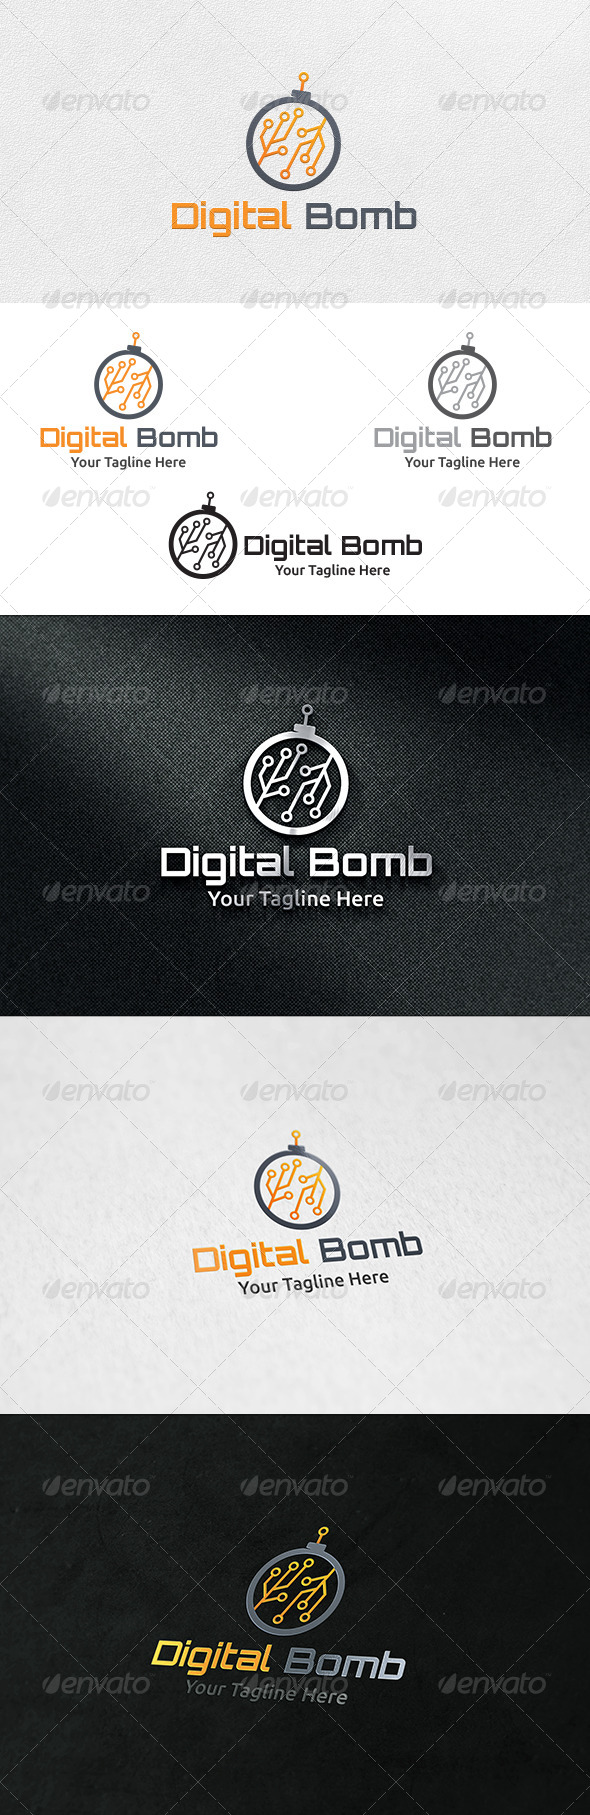 Digital Bomb - Logo Template - Objects Logo Templates